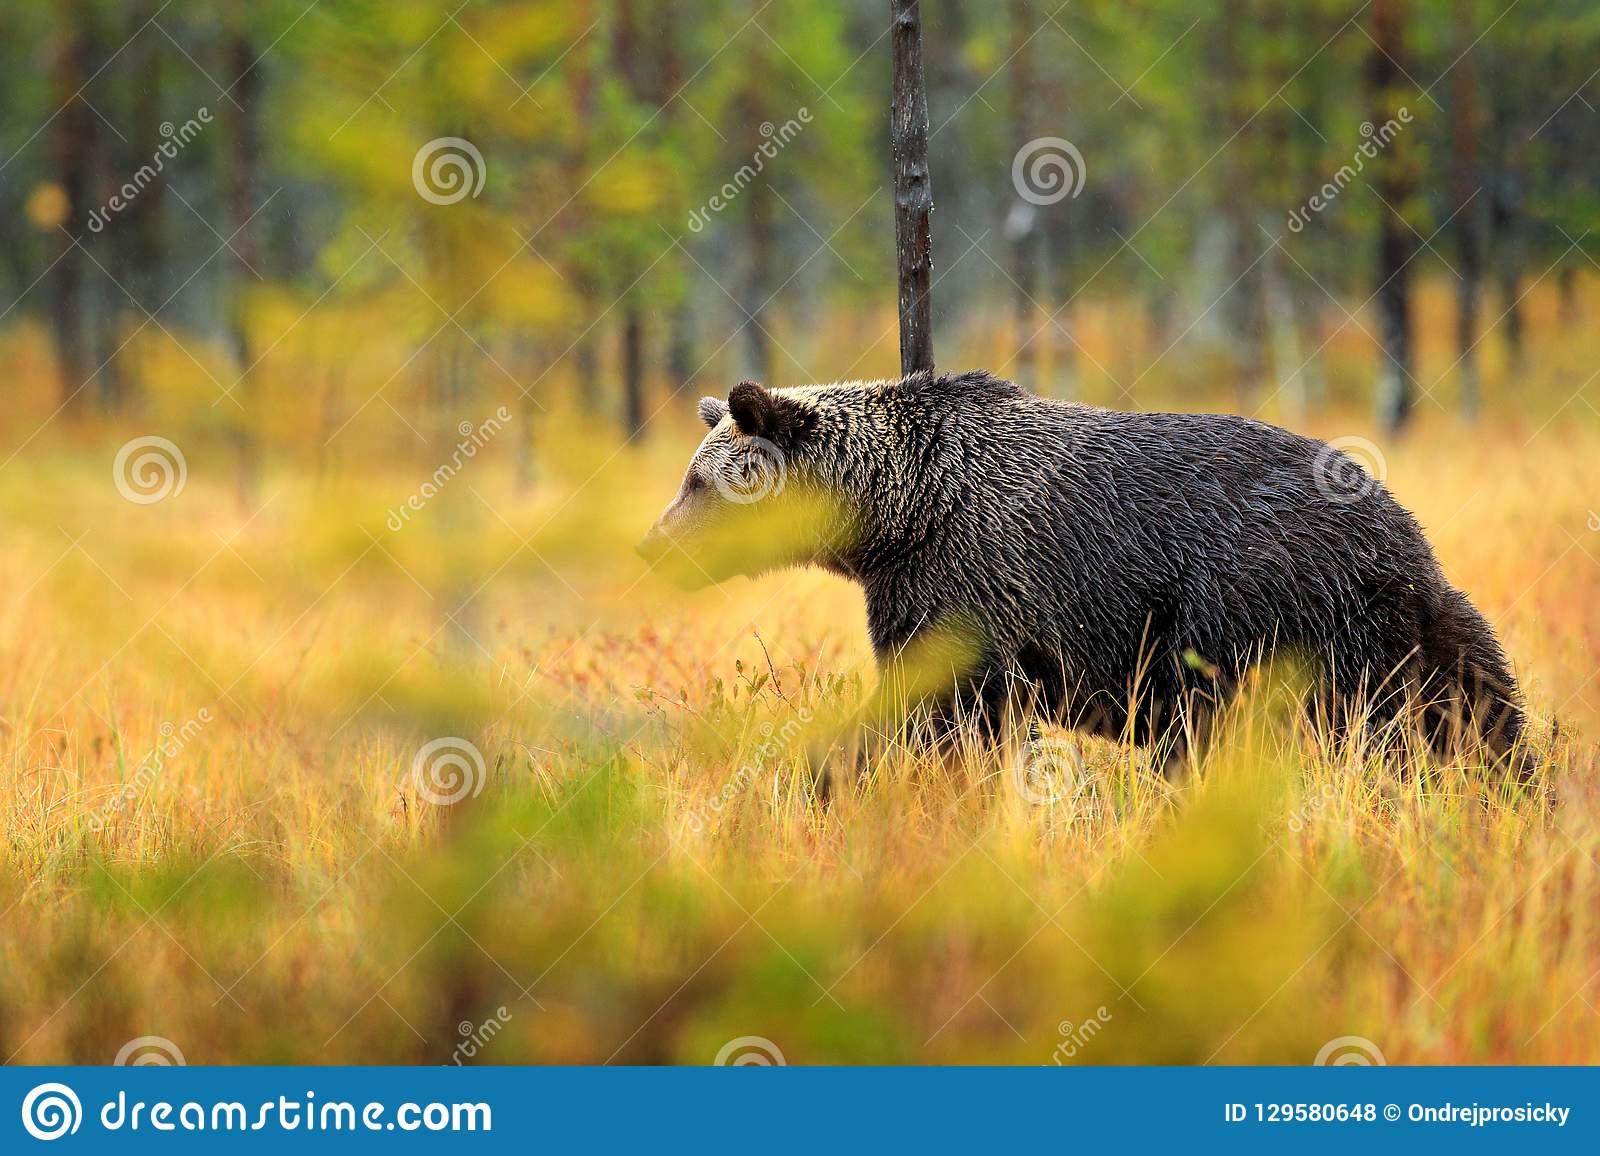 Bear hidden in orange red forest. Autumn trees with bear. Beautiful brown bear walking around lake with fall colours. Dangerous an